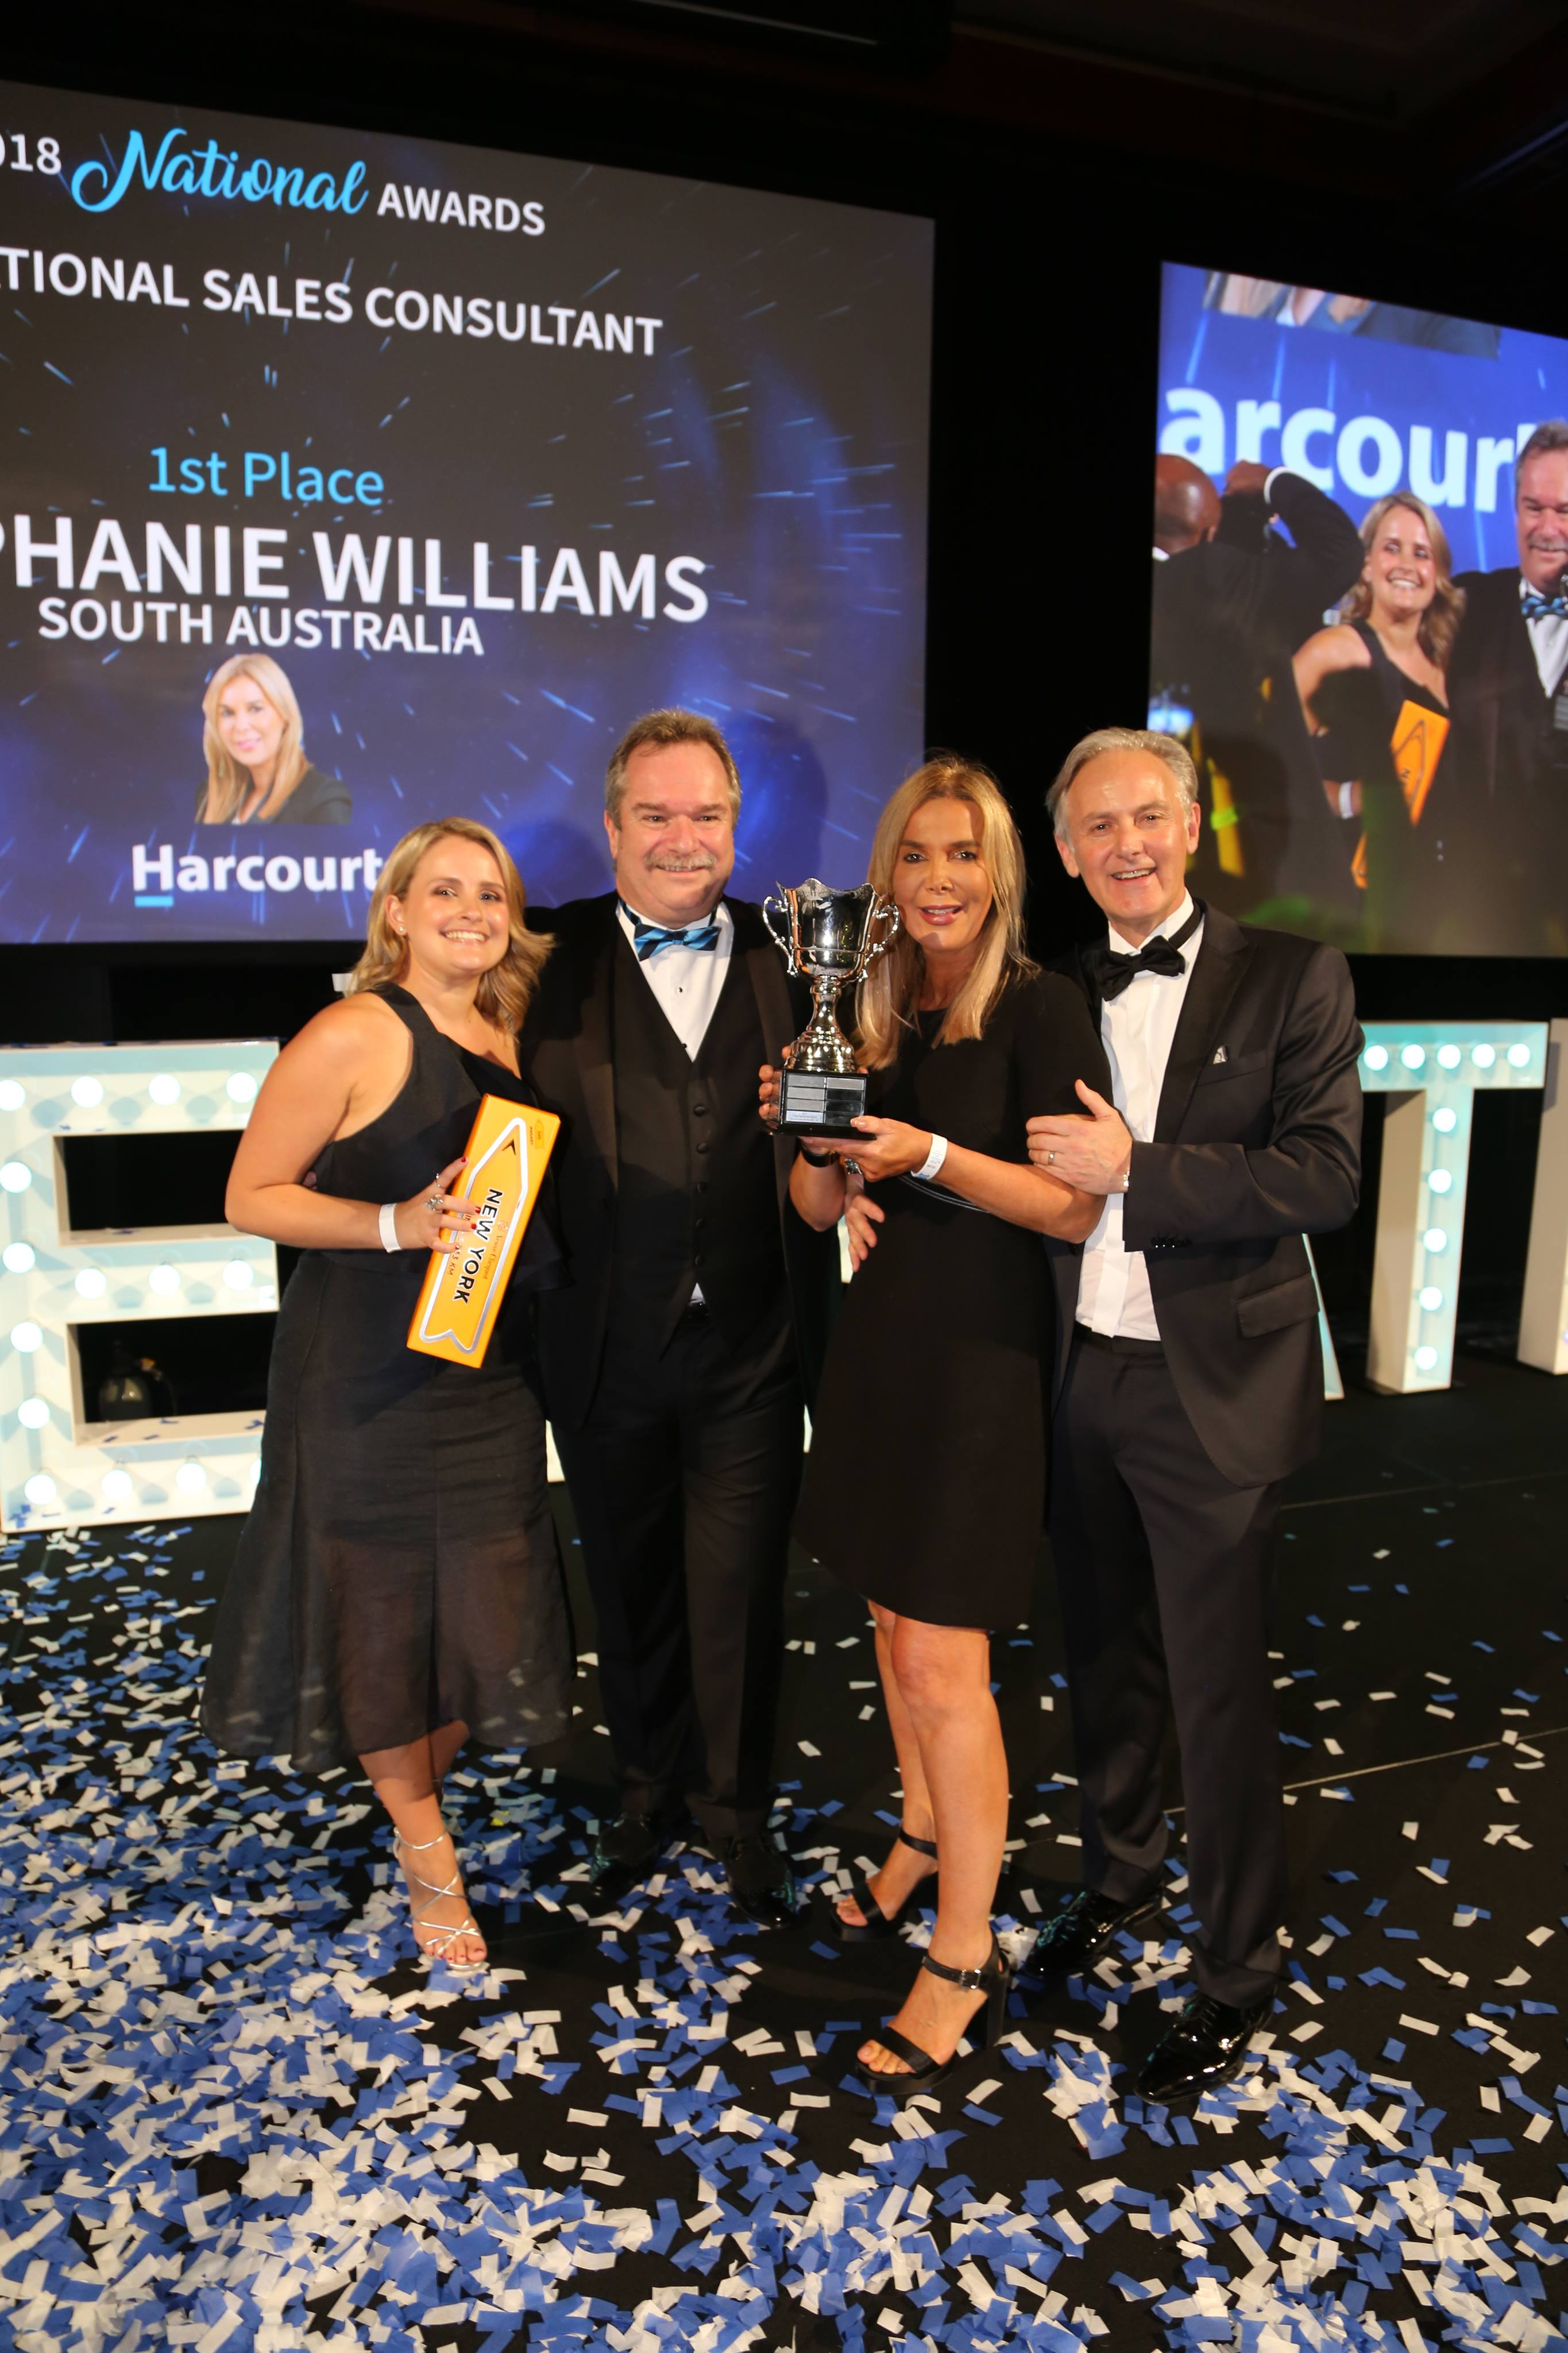 Adelaide's Stephanie Williams Repeats as Harcourts Australia Top Sales Consultant of the Year